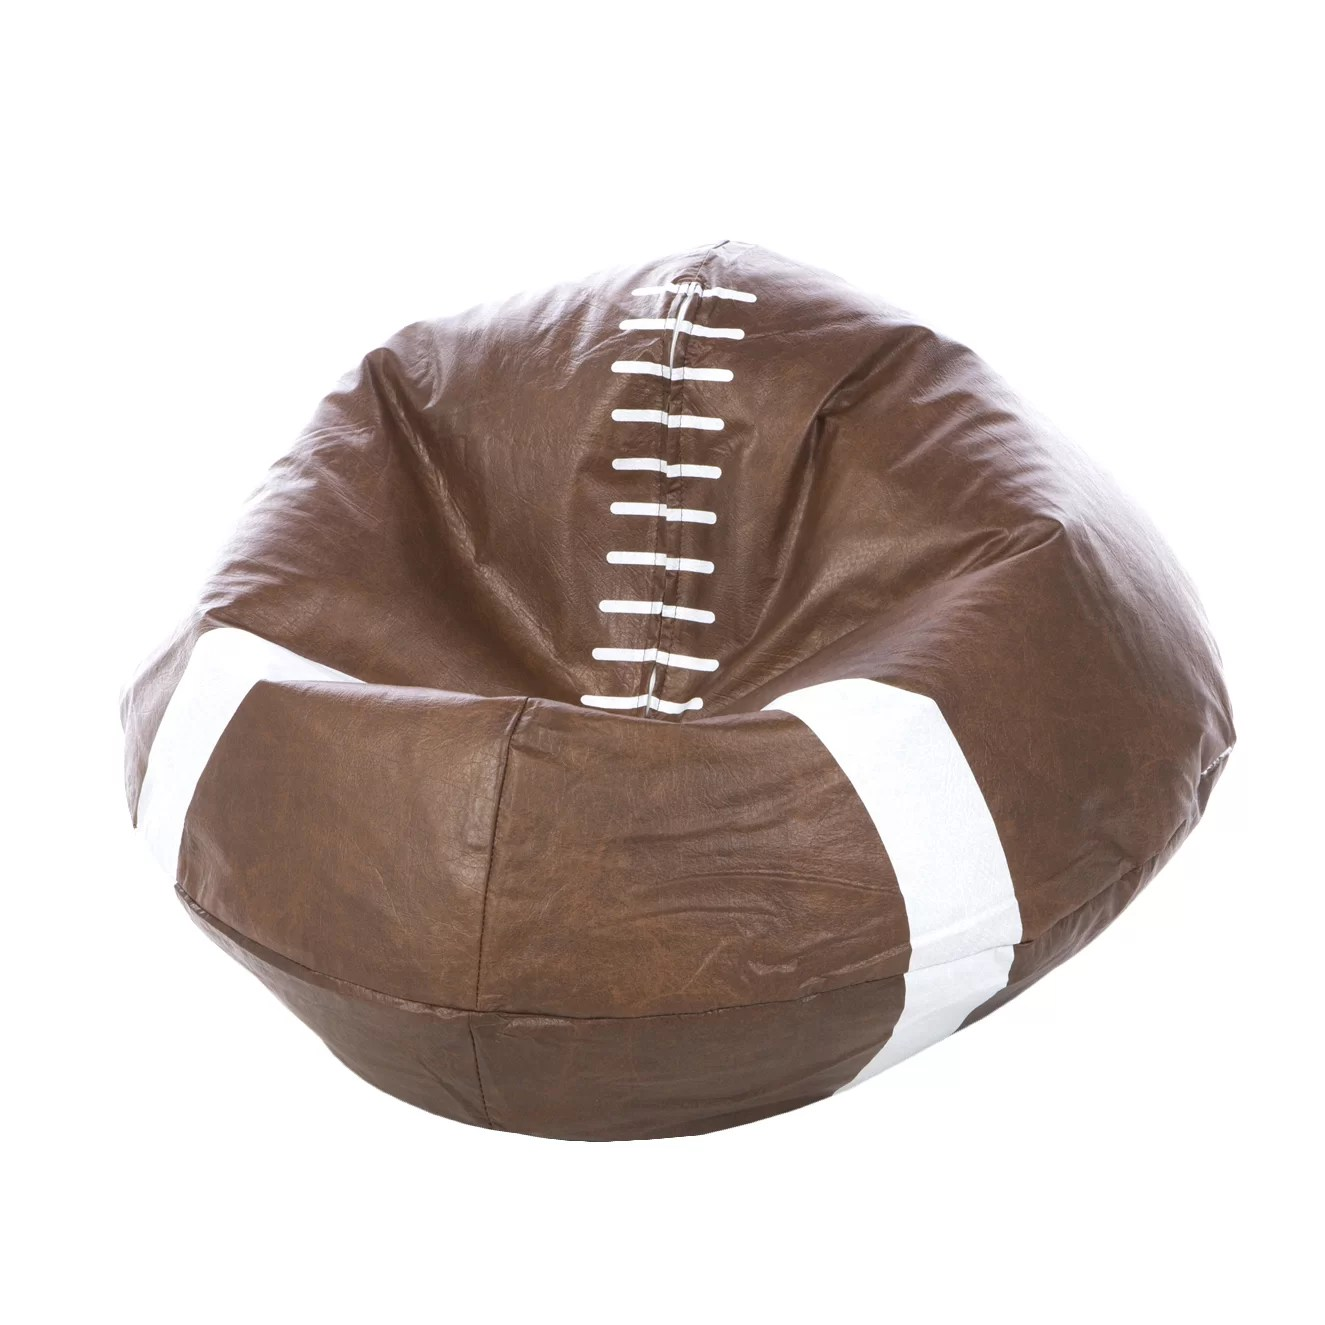 Ll Bean Rocking Chair X Rocker Football Bean Bag Chair And Reviews Wayfair